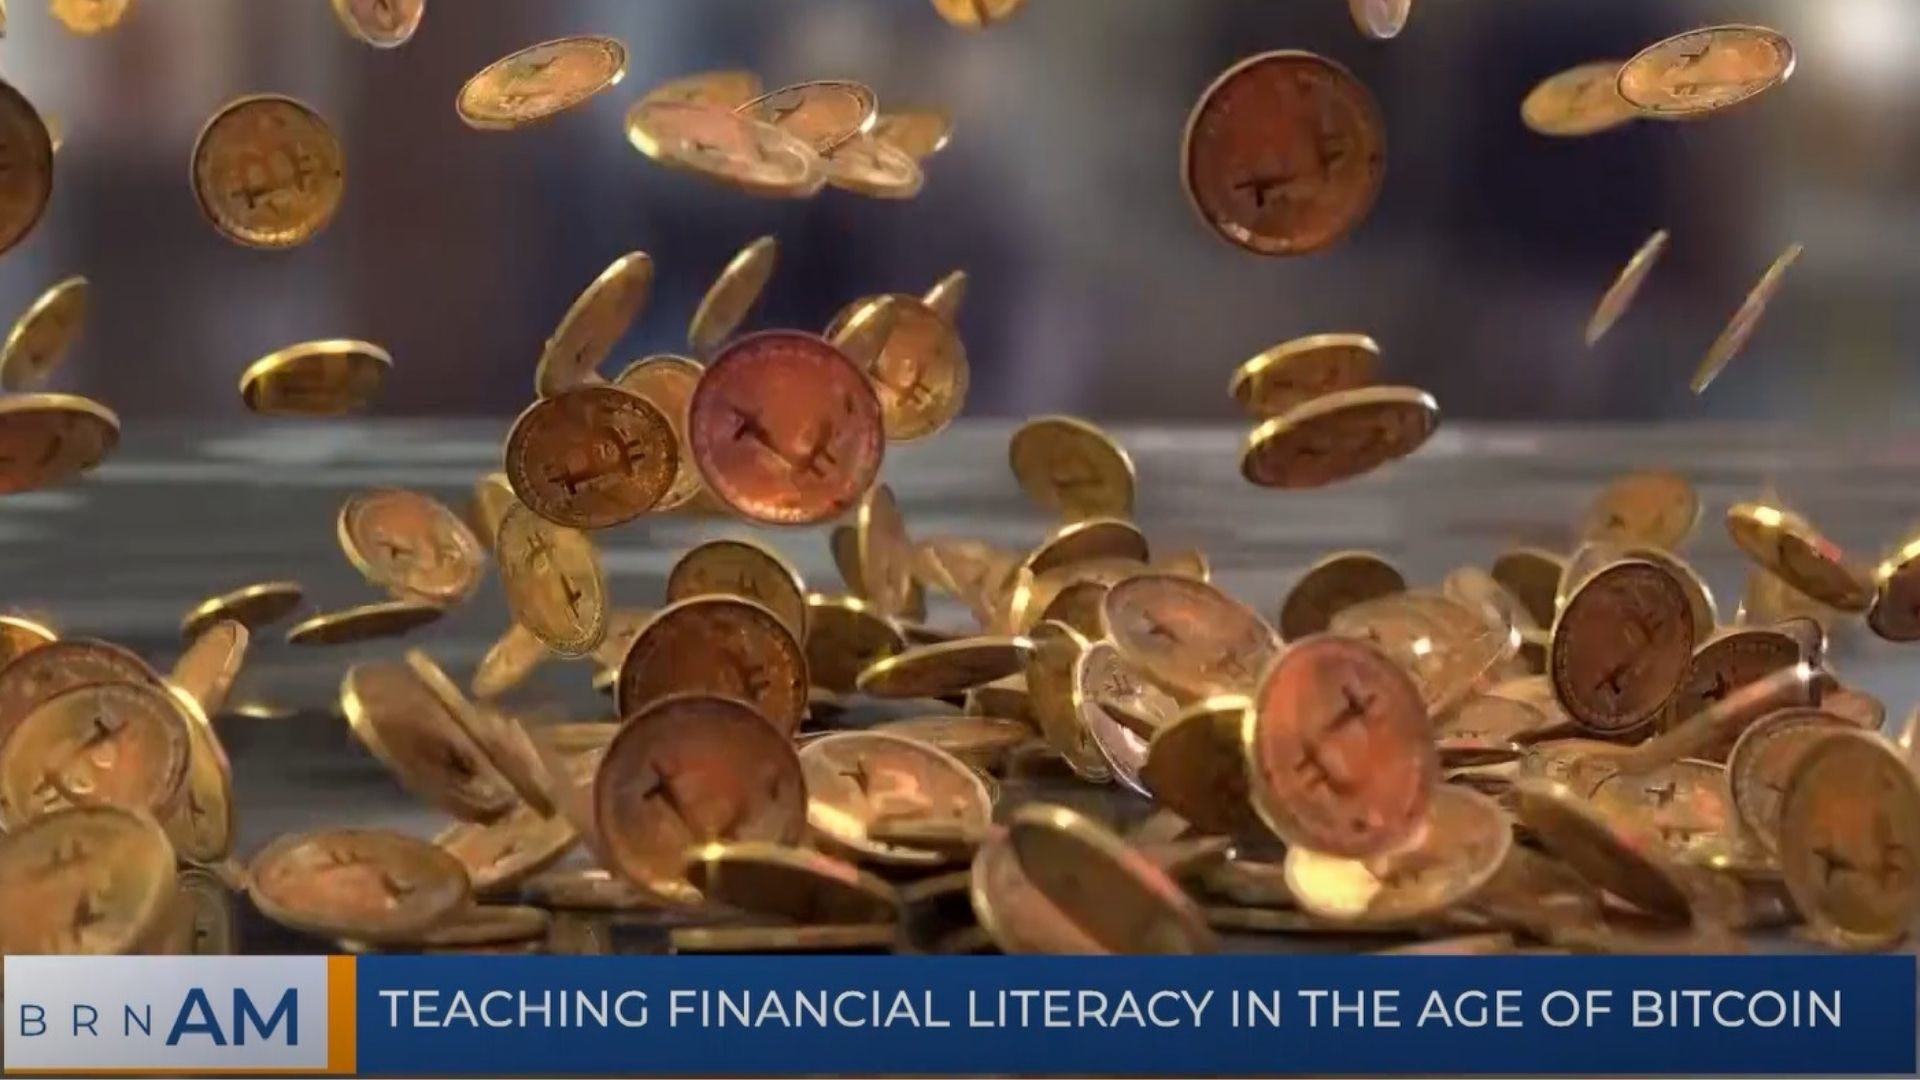 BRN AM   Teaching Financial Literacy In The Age of Bitcoin